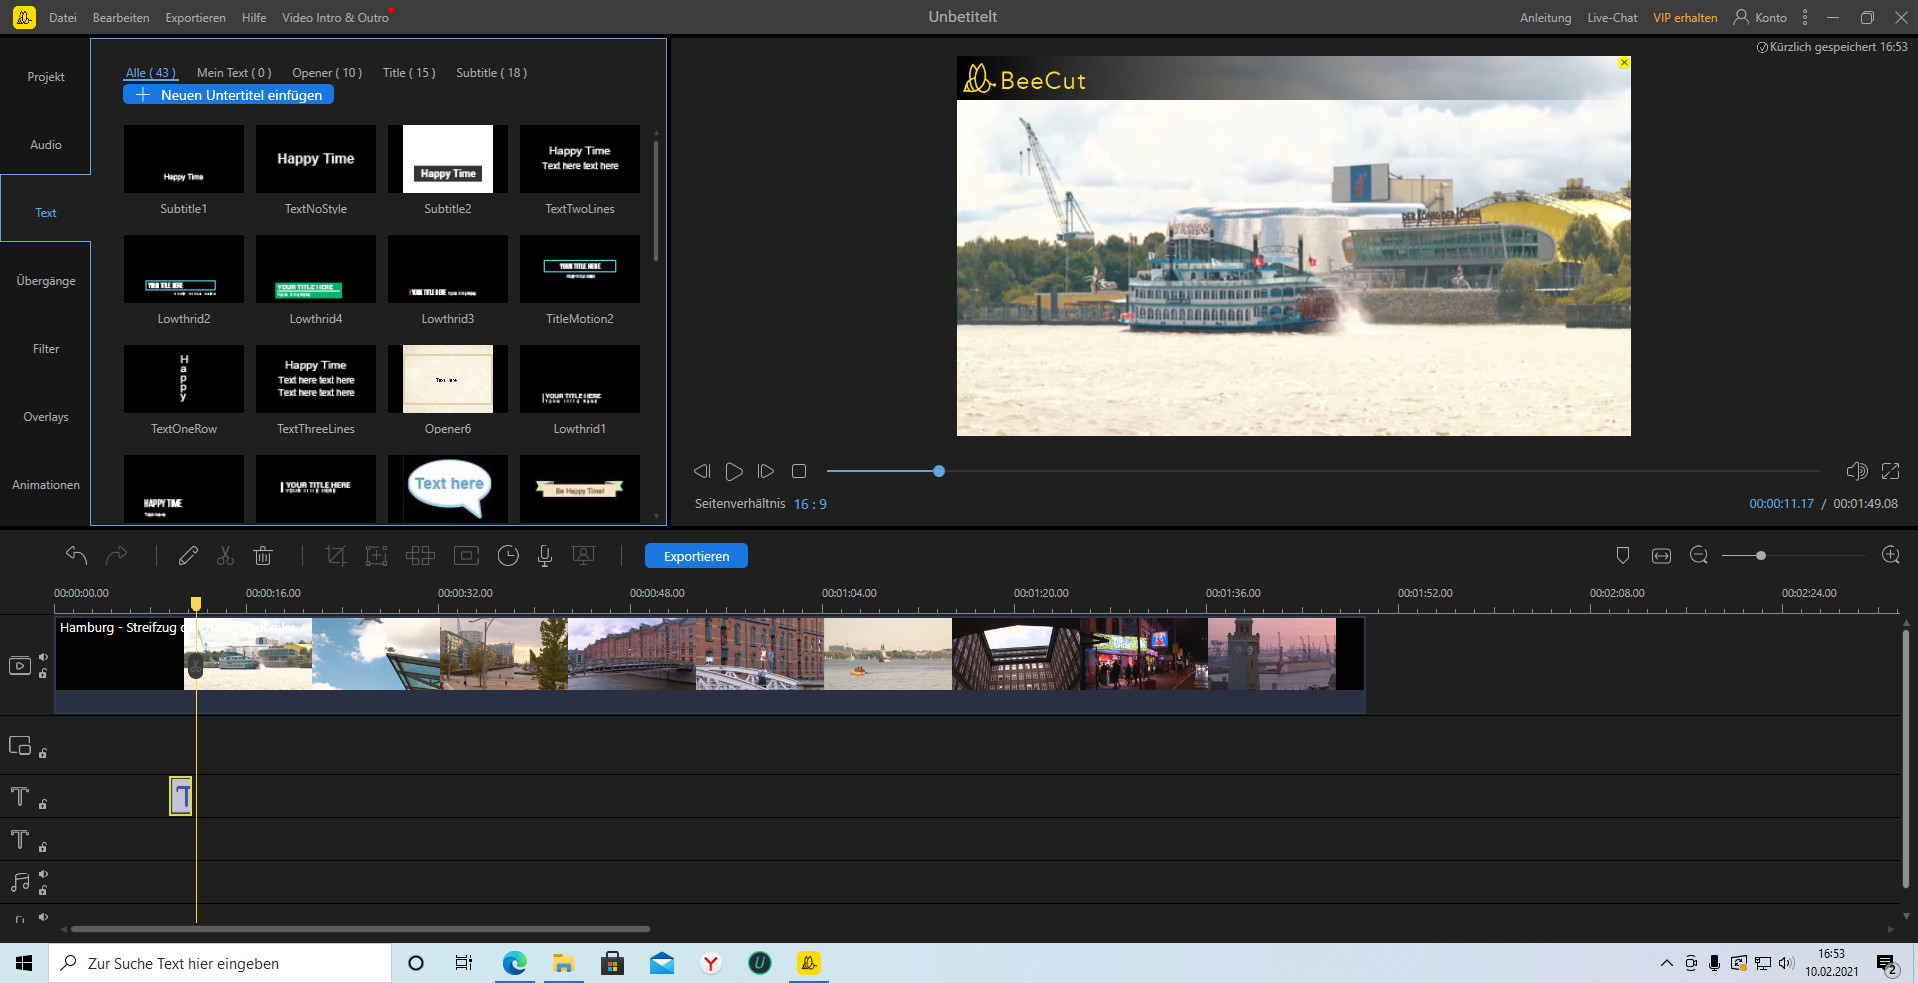 Screenshot 1 - BeeCut Video Editor